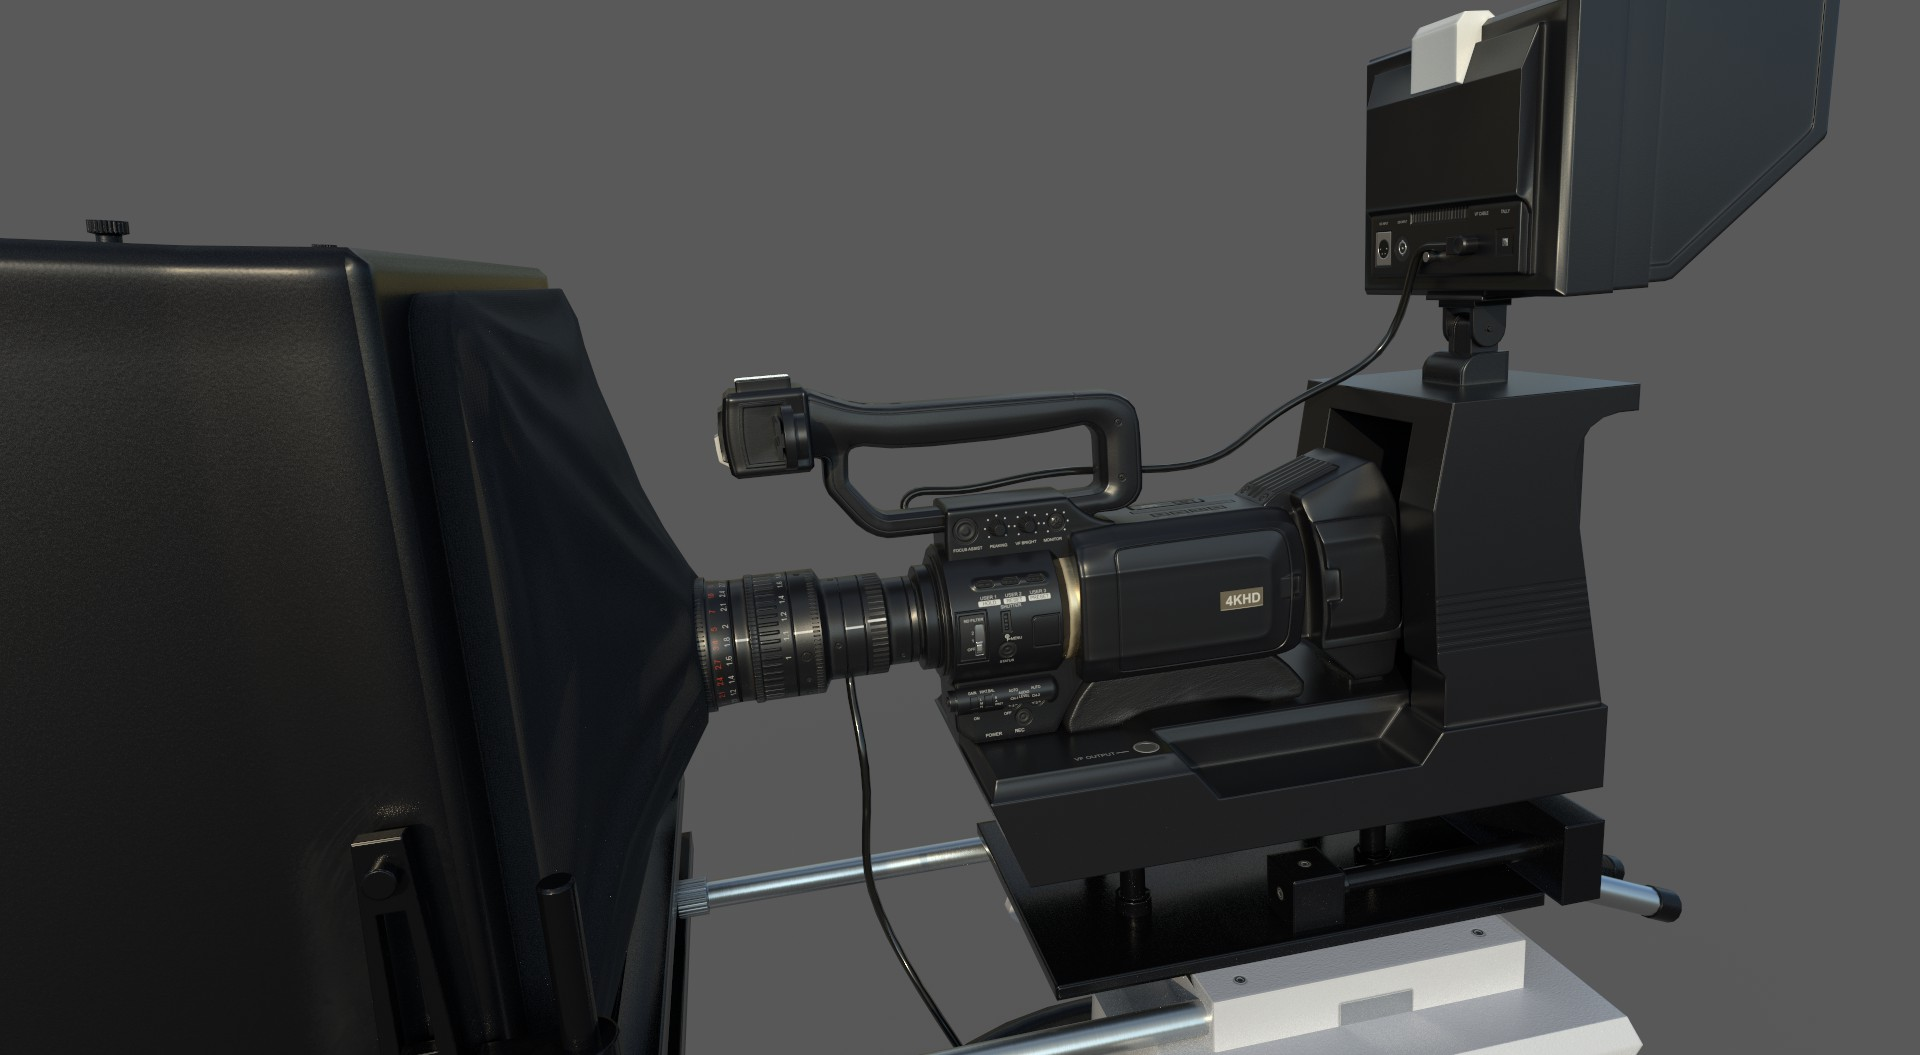 NewsroomCamera_13.jpg